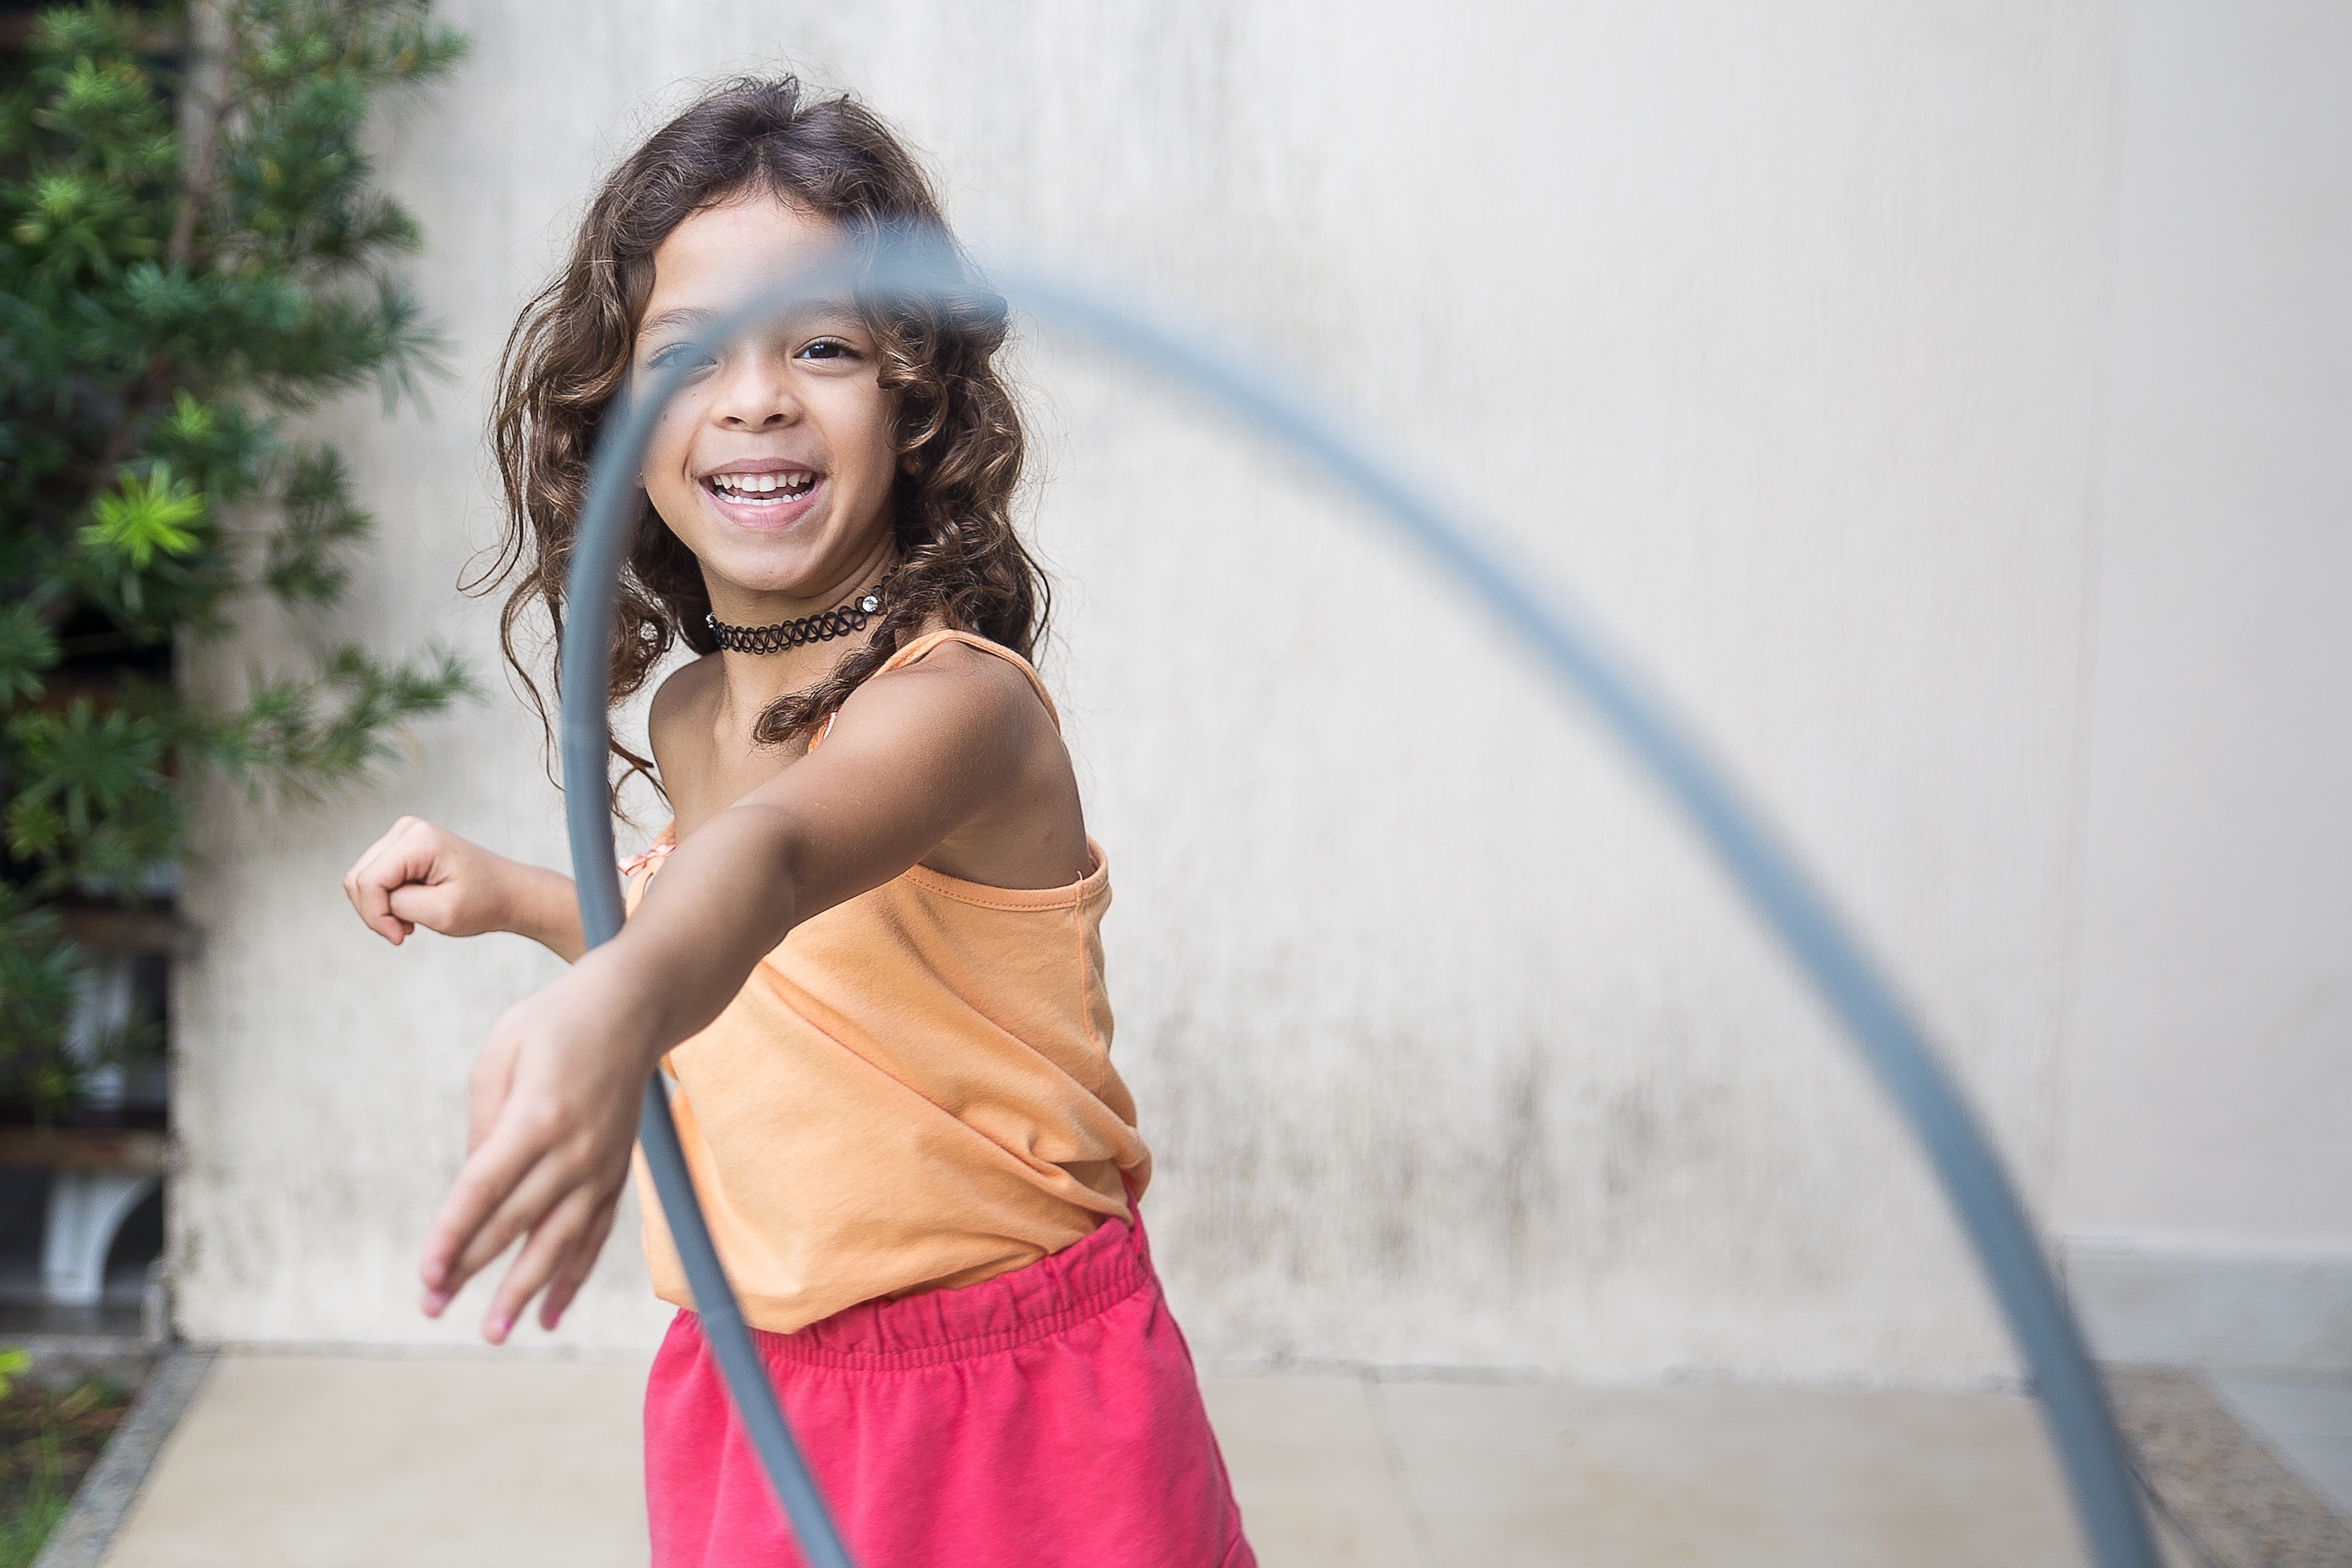 Girl in peach tank top and pink shorts tossing a hula hoop toward the camera.